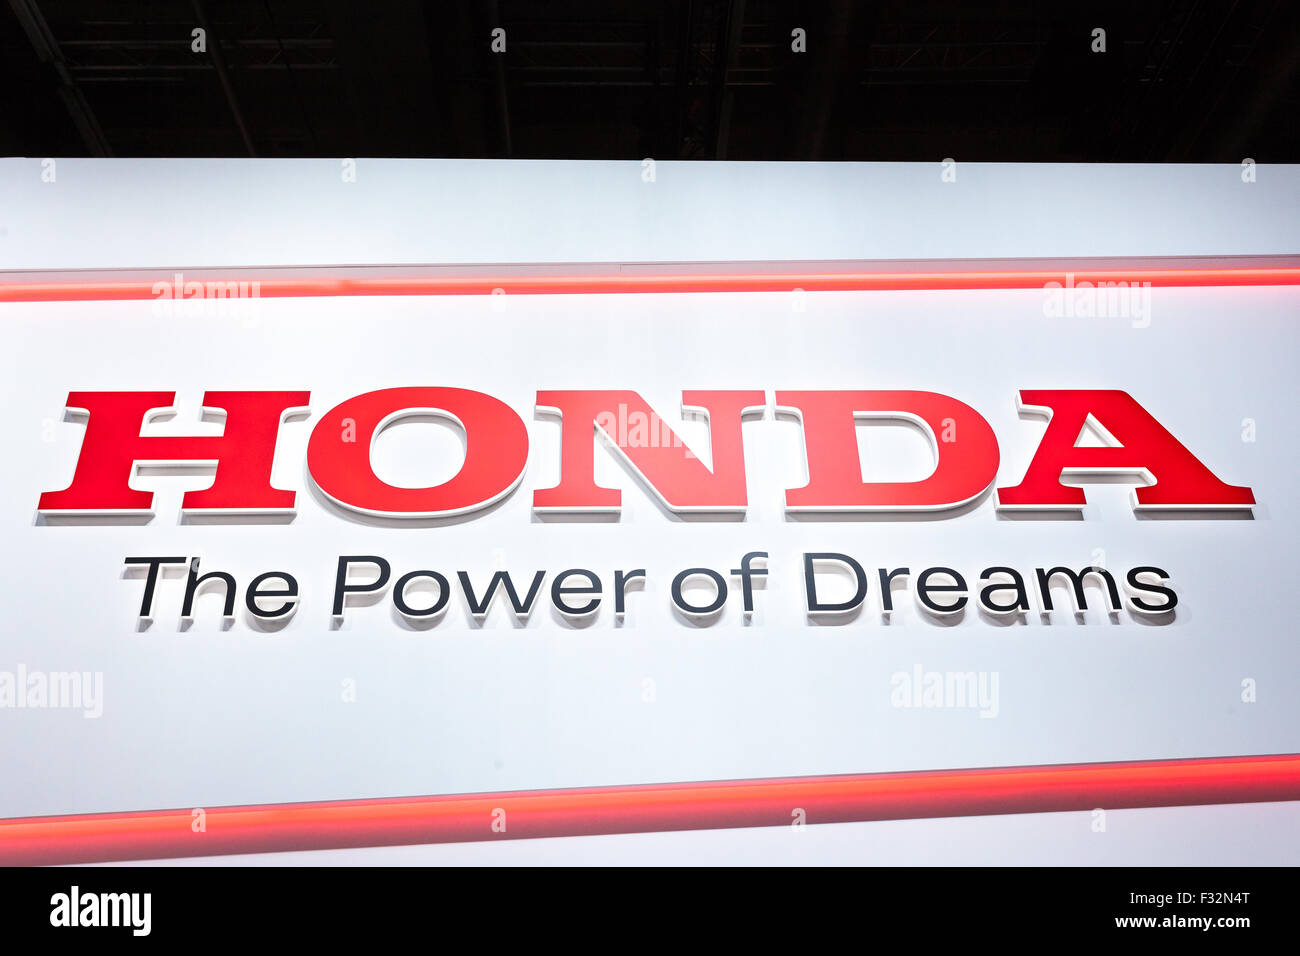 Honda Logo And Slogan